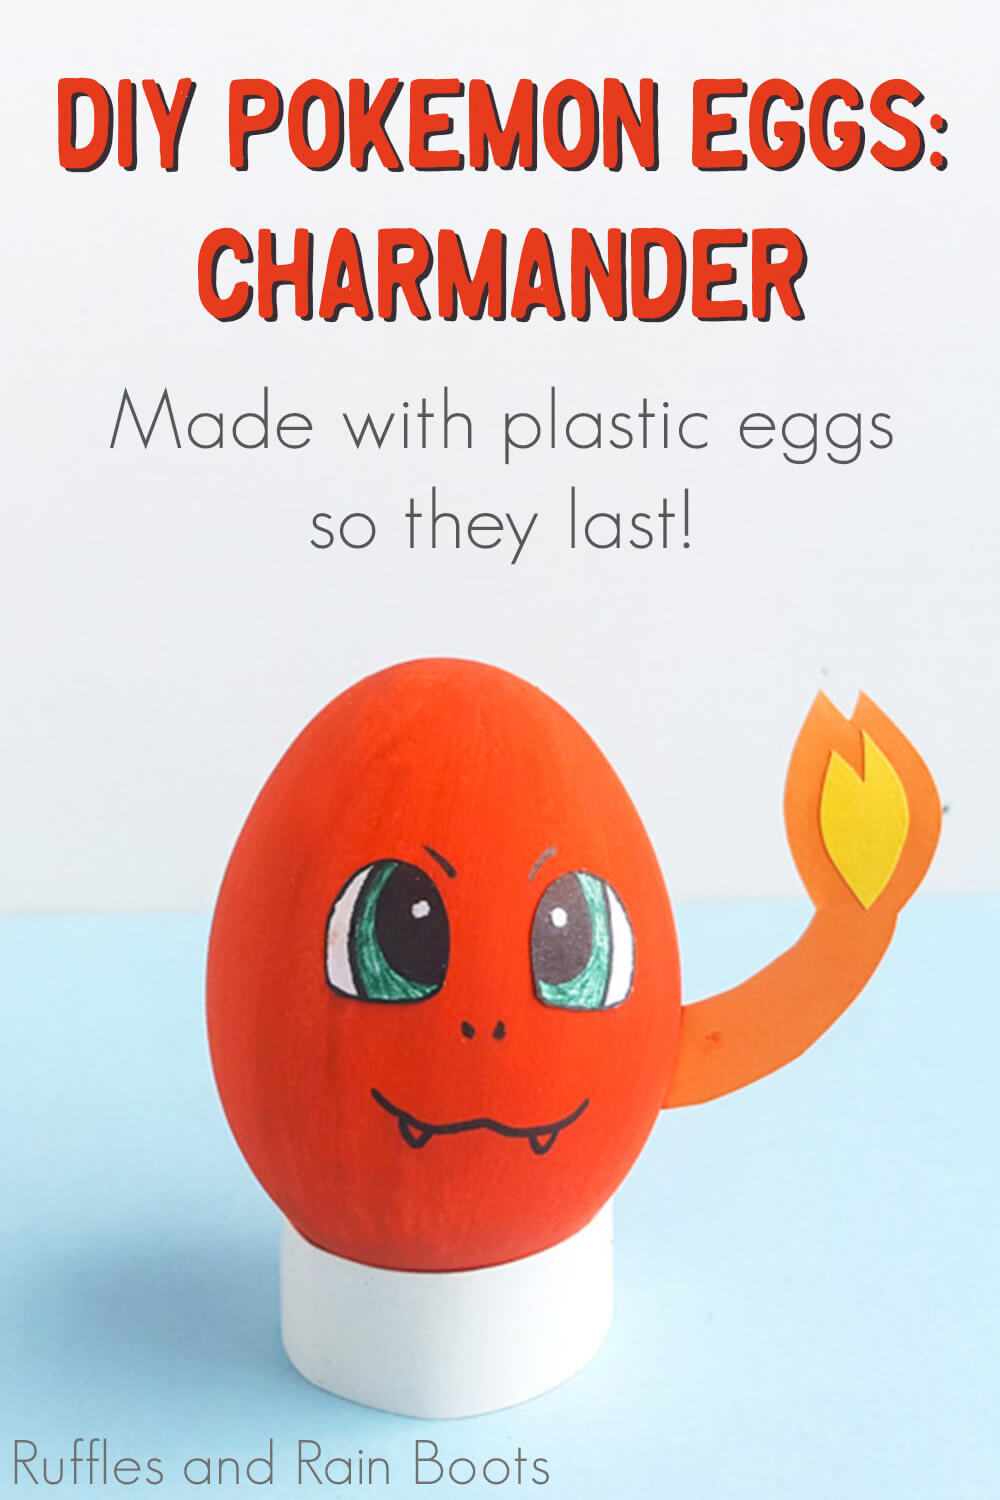 charmander easter pokemon eggs on a blue background with text which reads diy pokemon eggs: charmander made with plastic eggs so they last!